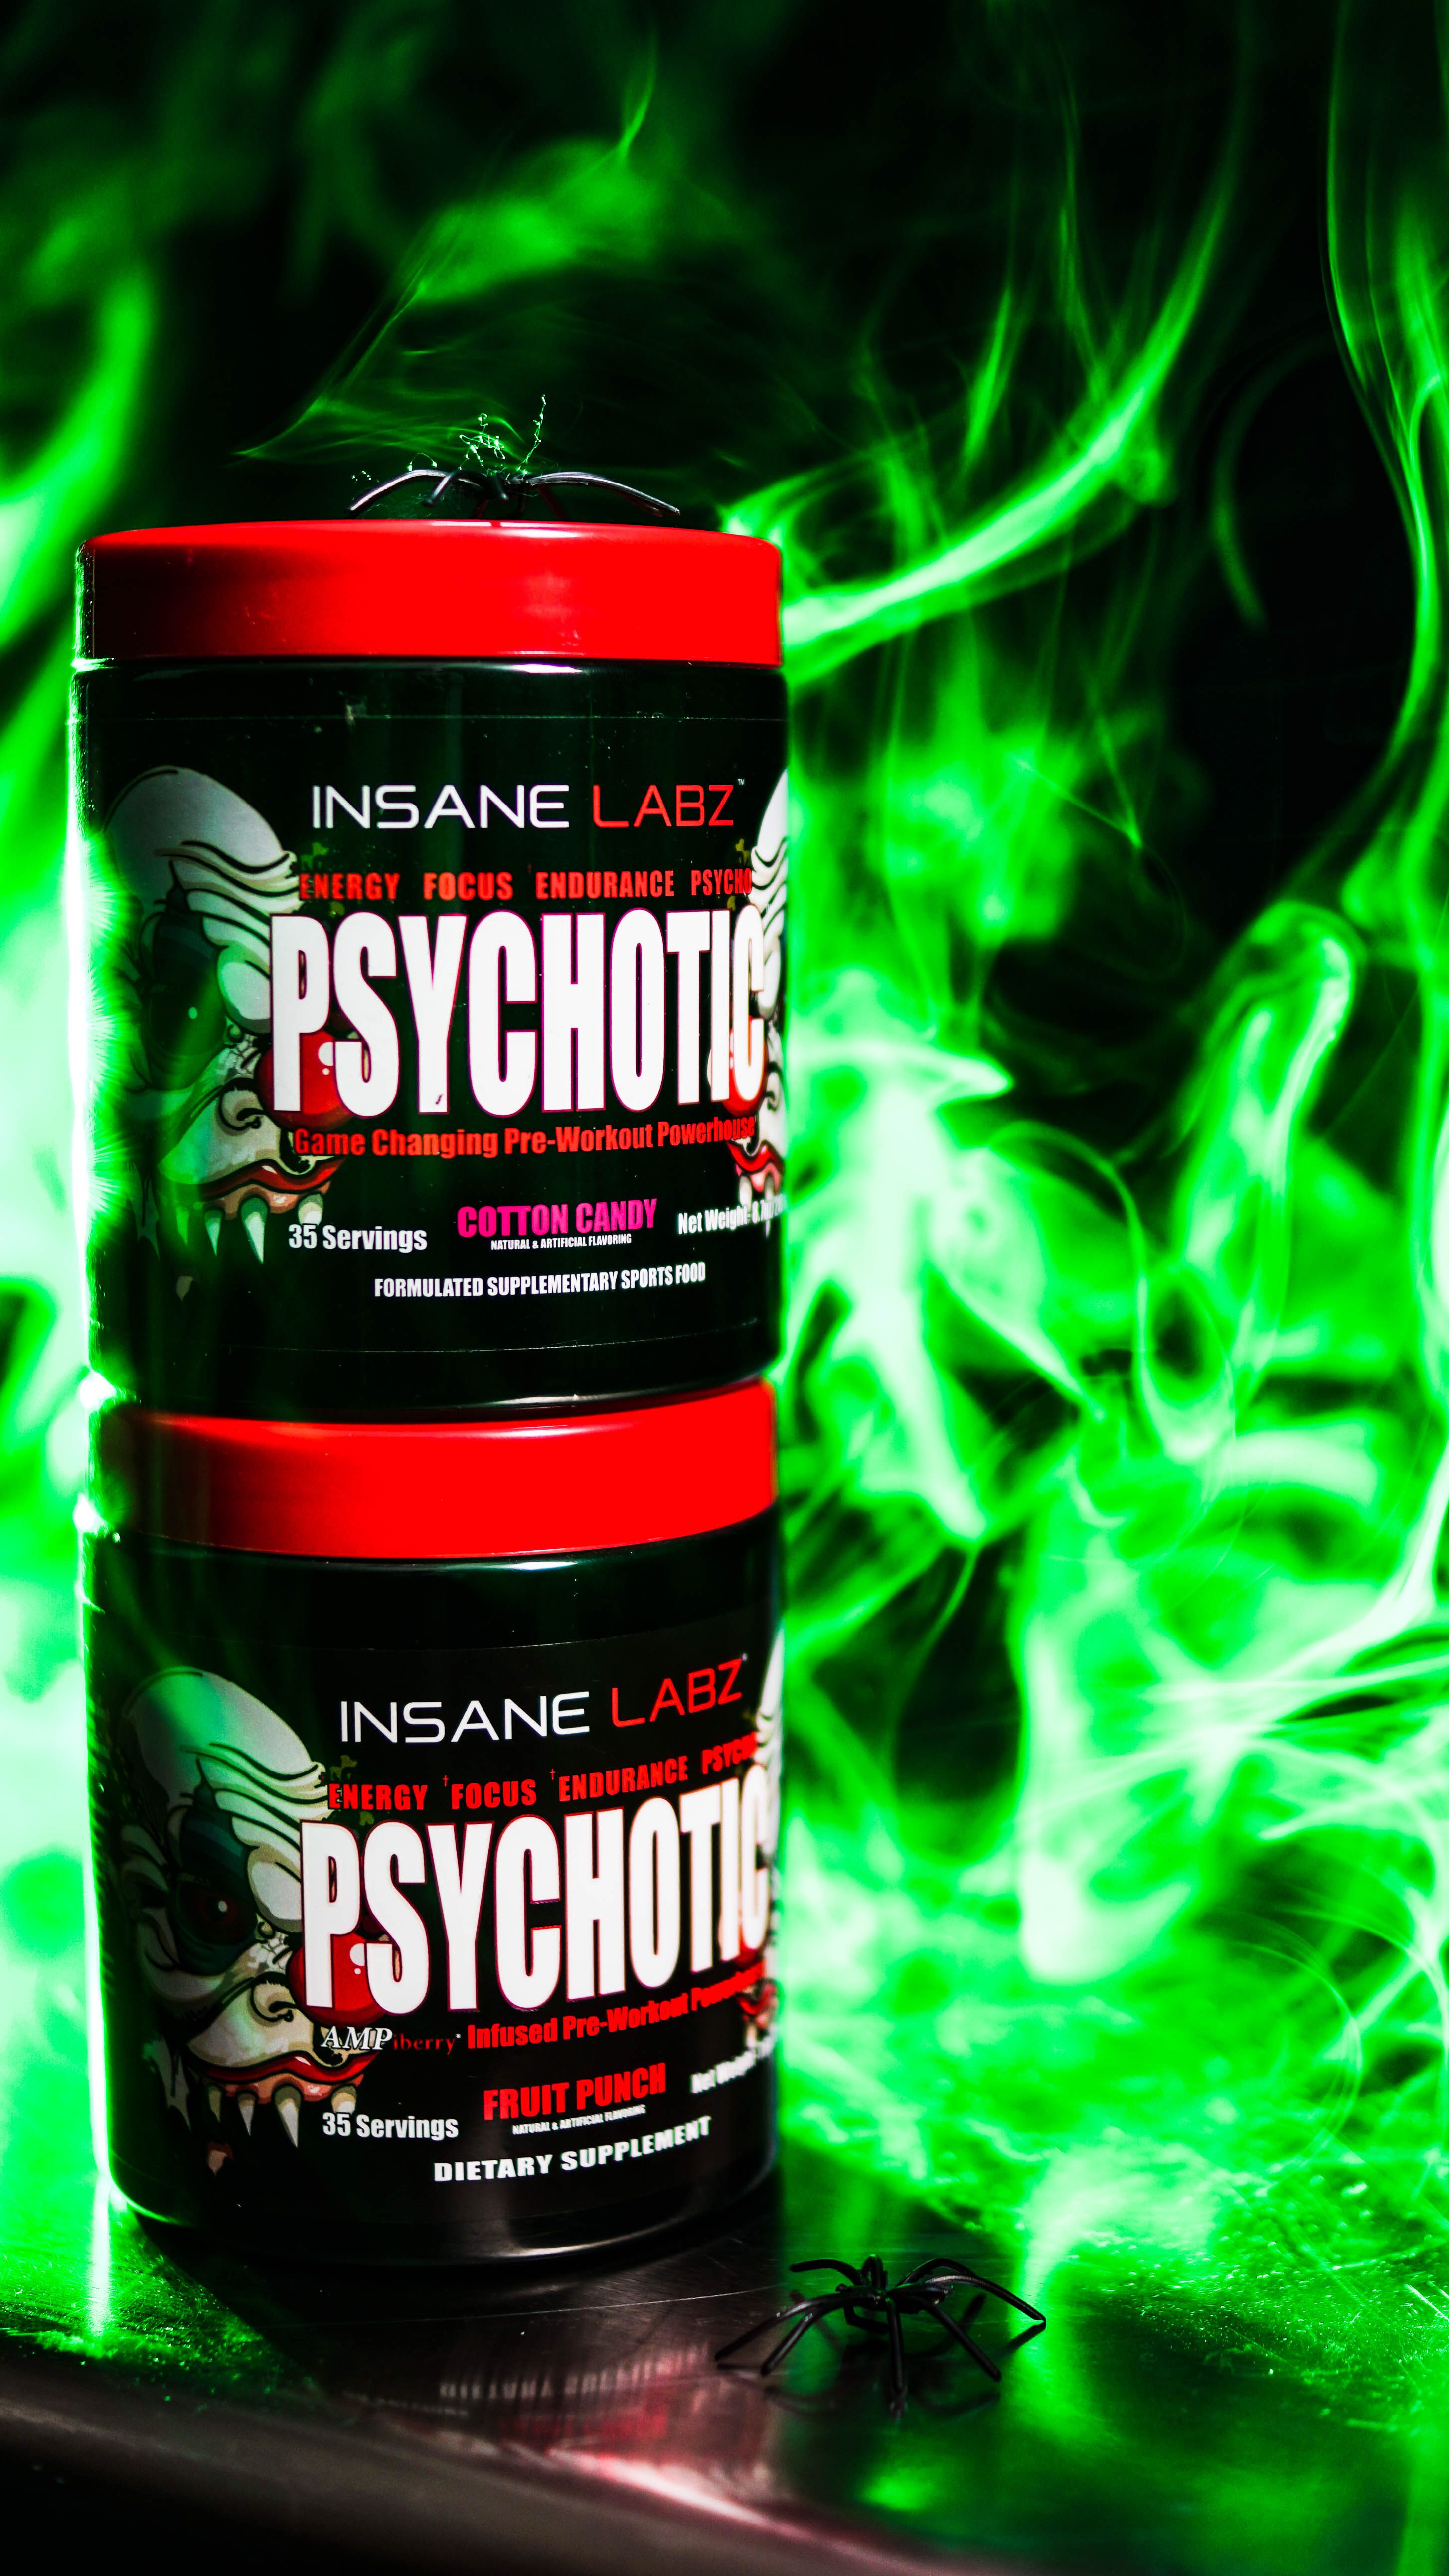 Psychotic Fitness Supplements Fitness Workout How To